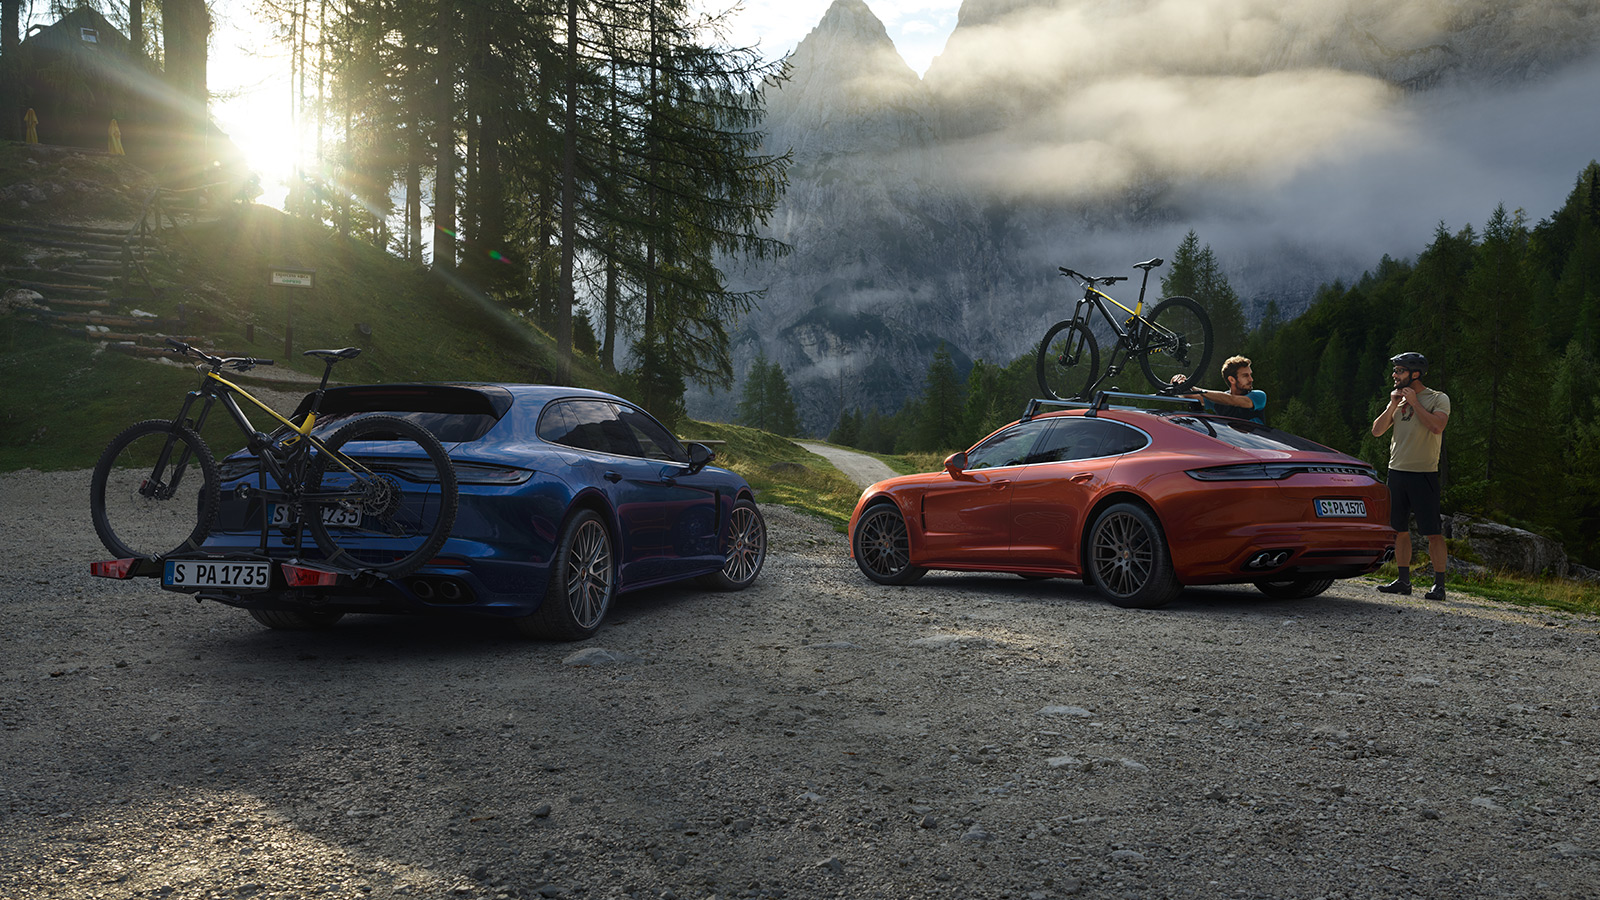 Porsche - Bicycle racks